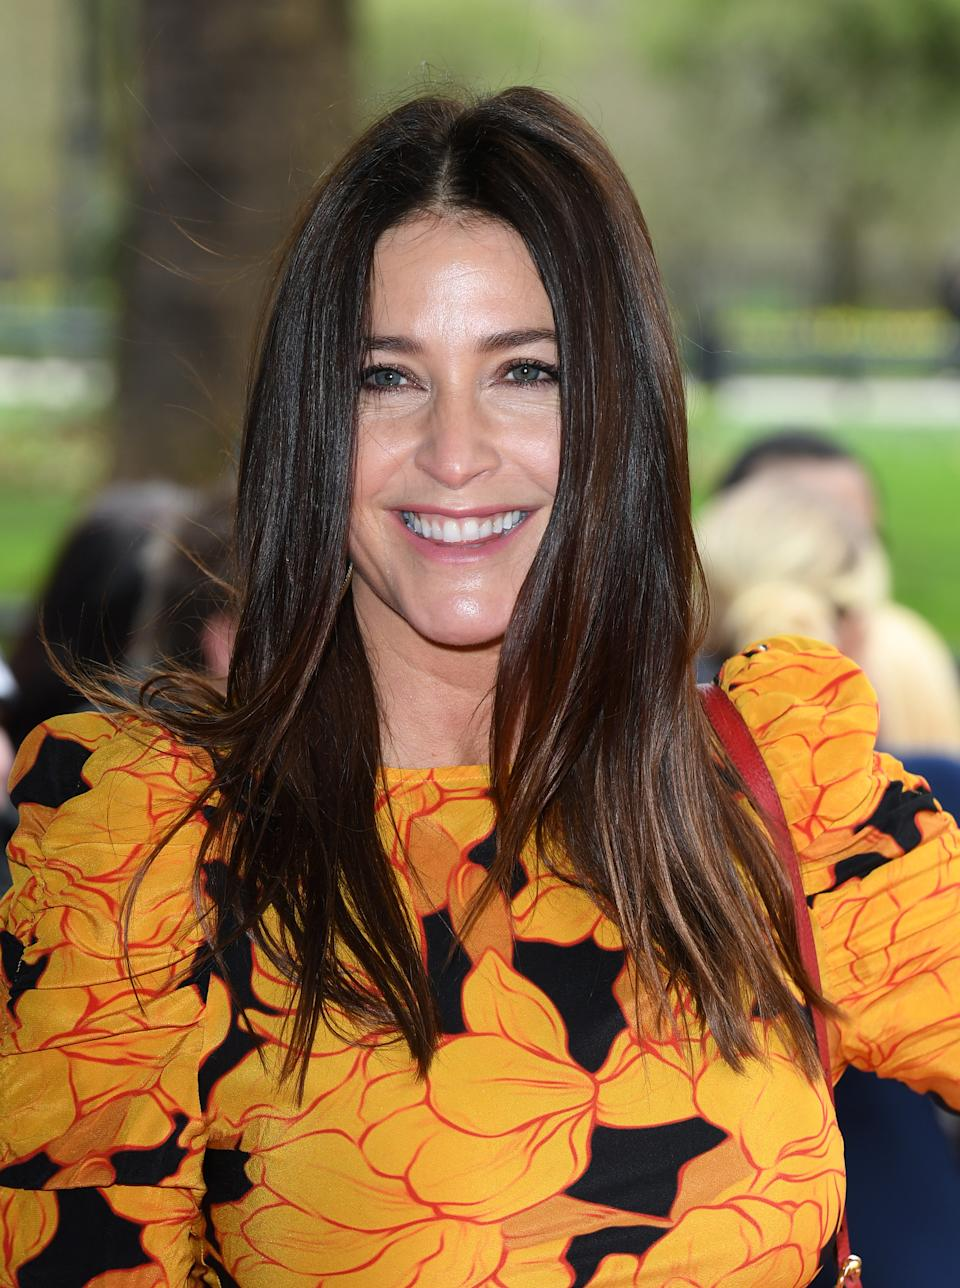 Lisa Snowdon attends the TRIC Awards 2020 at The Grosvenor House Hotel on March 10, 2020 in London, England. (Photo by Karwai Tang/WireImage)